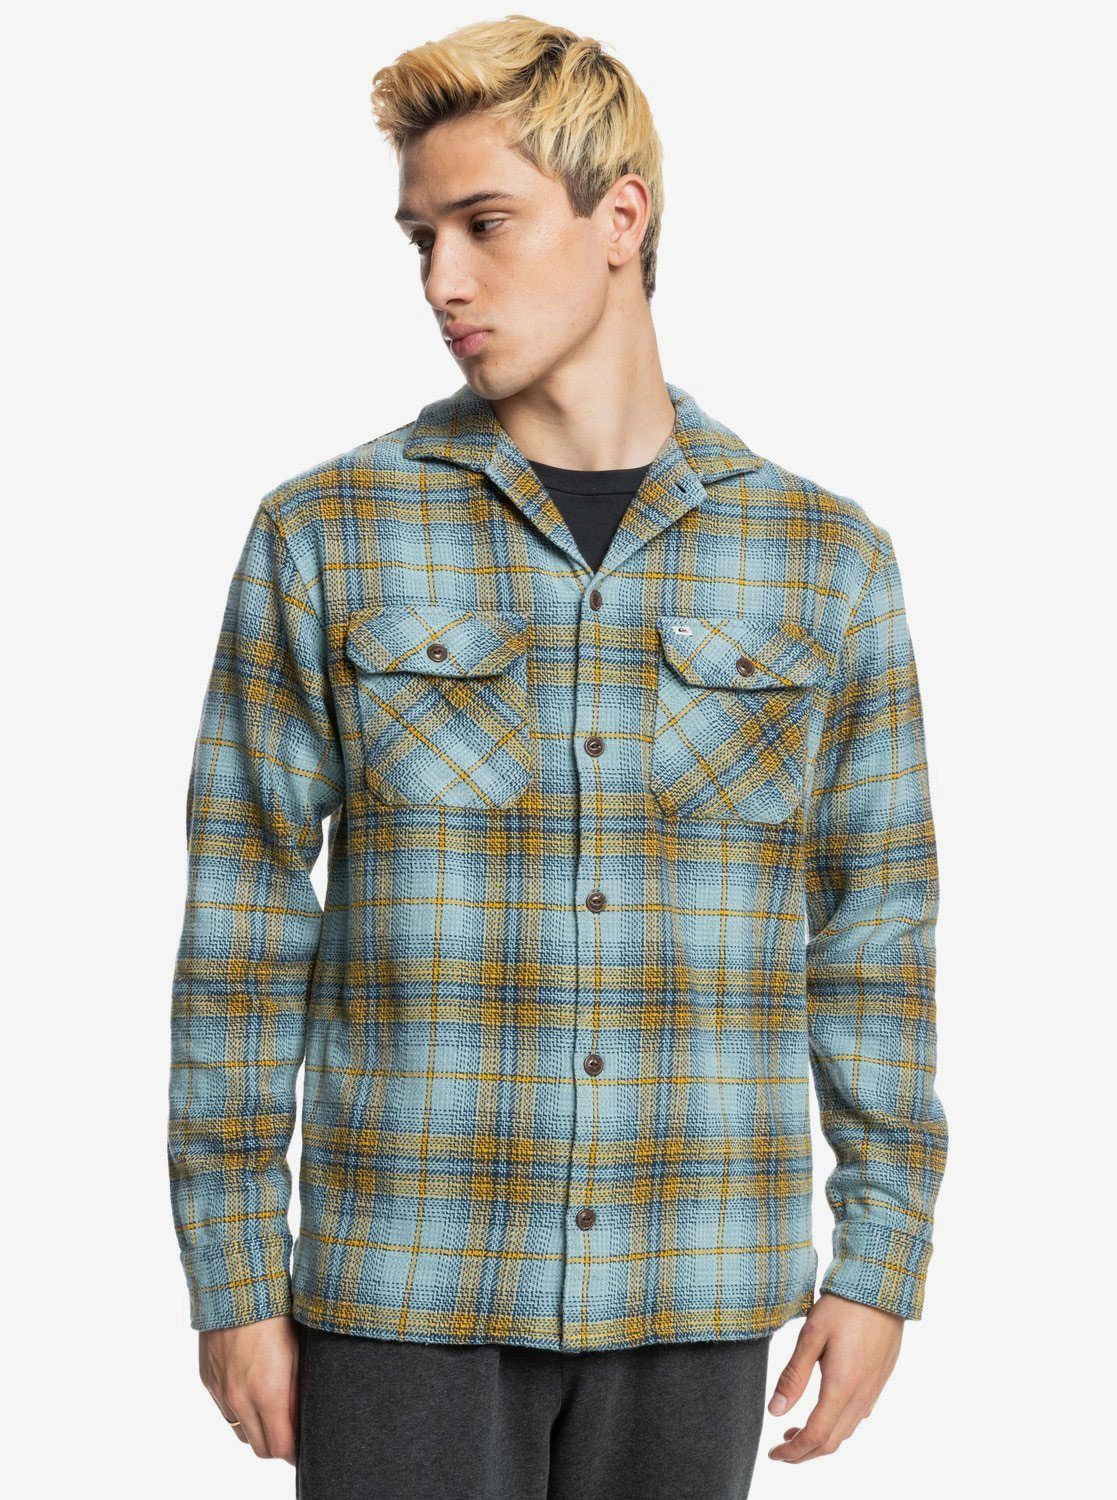 Quiksilver Fall/Winter collection